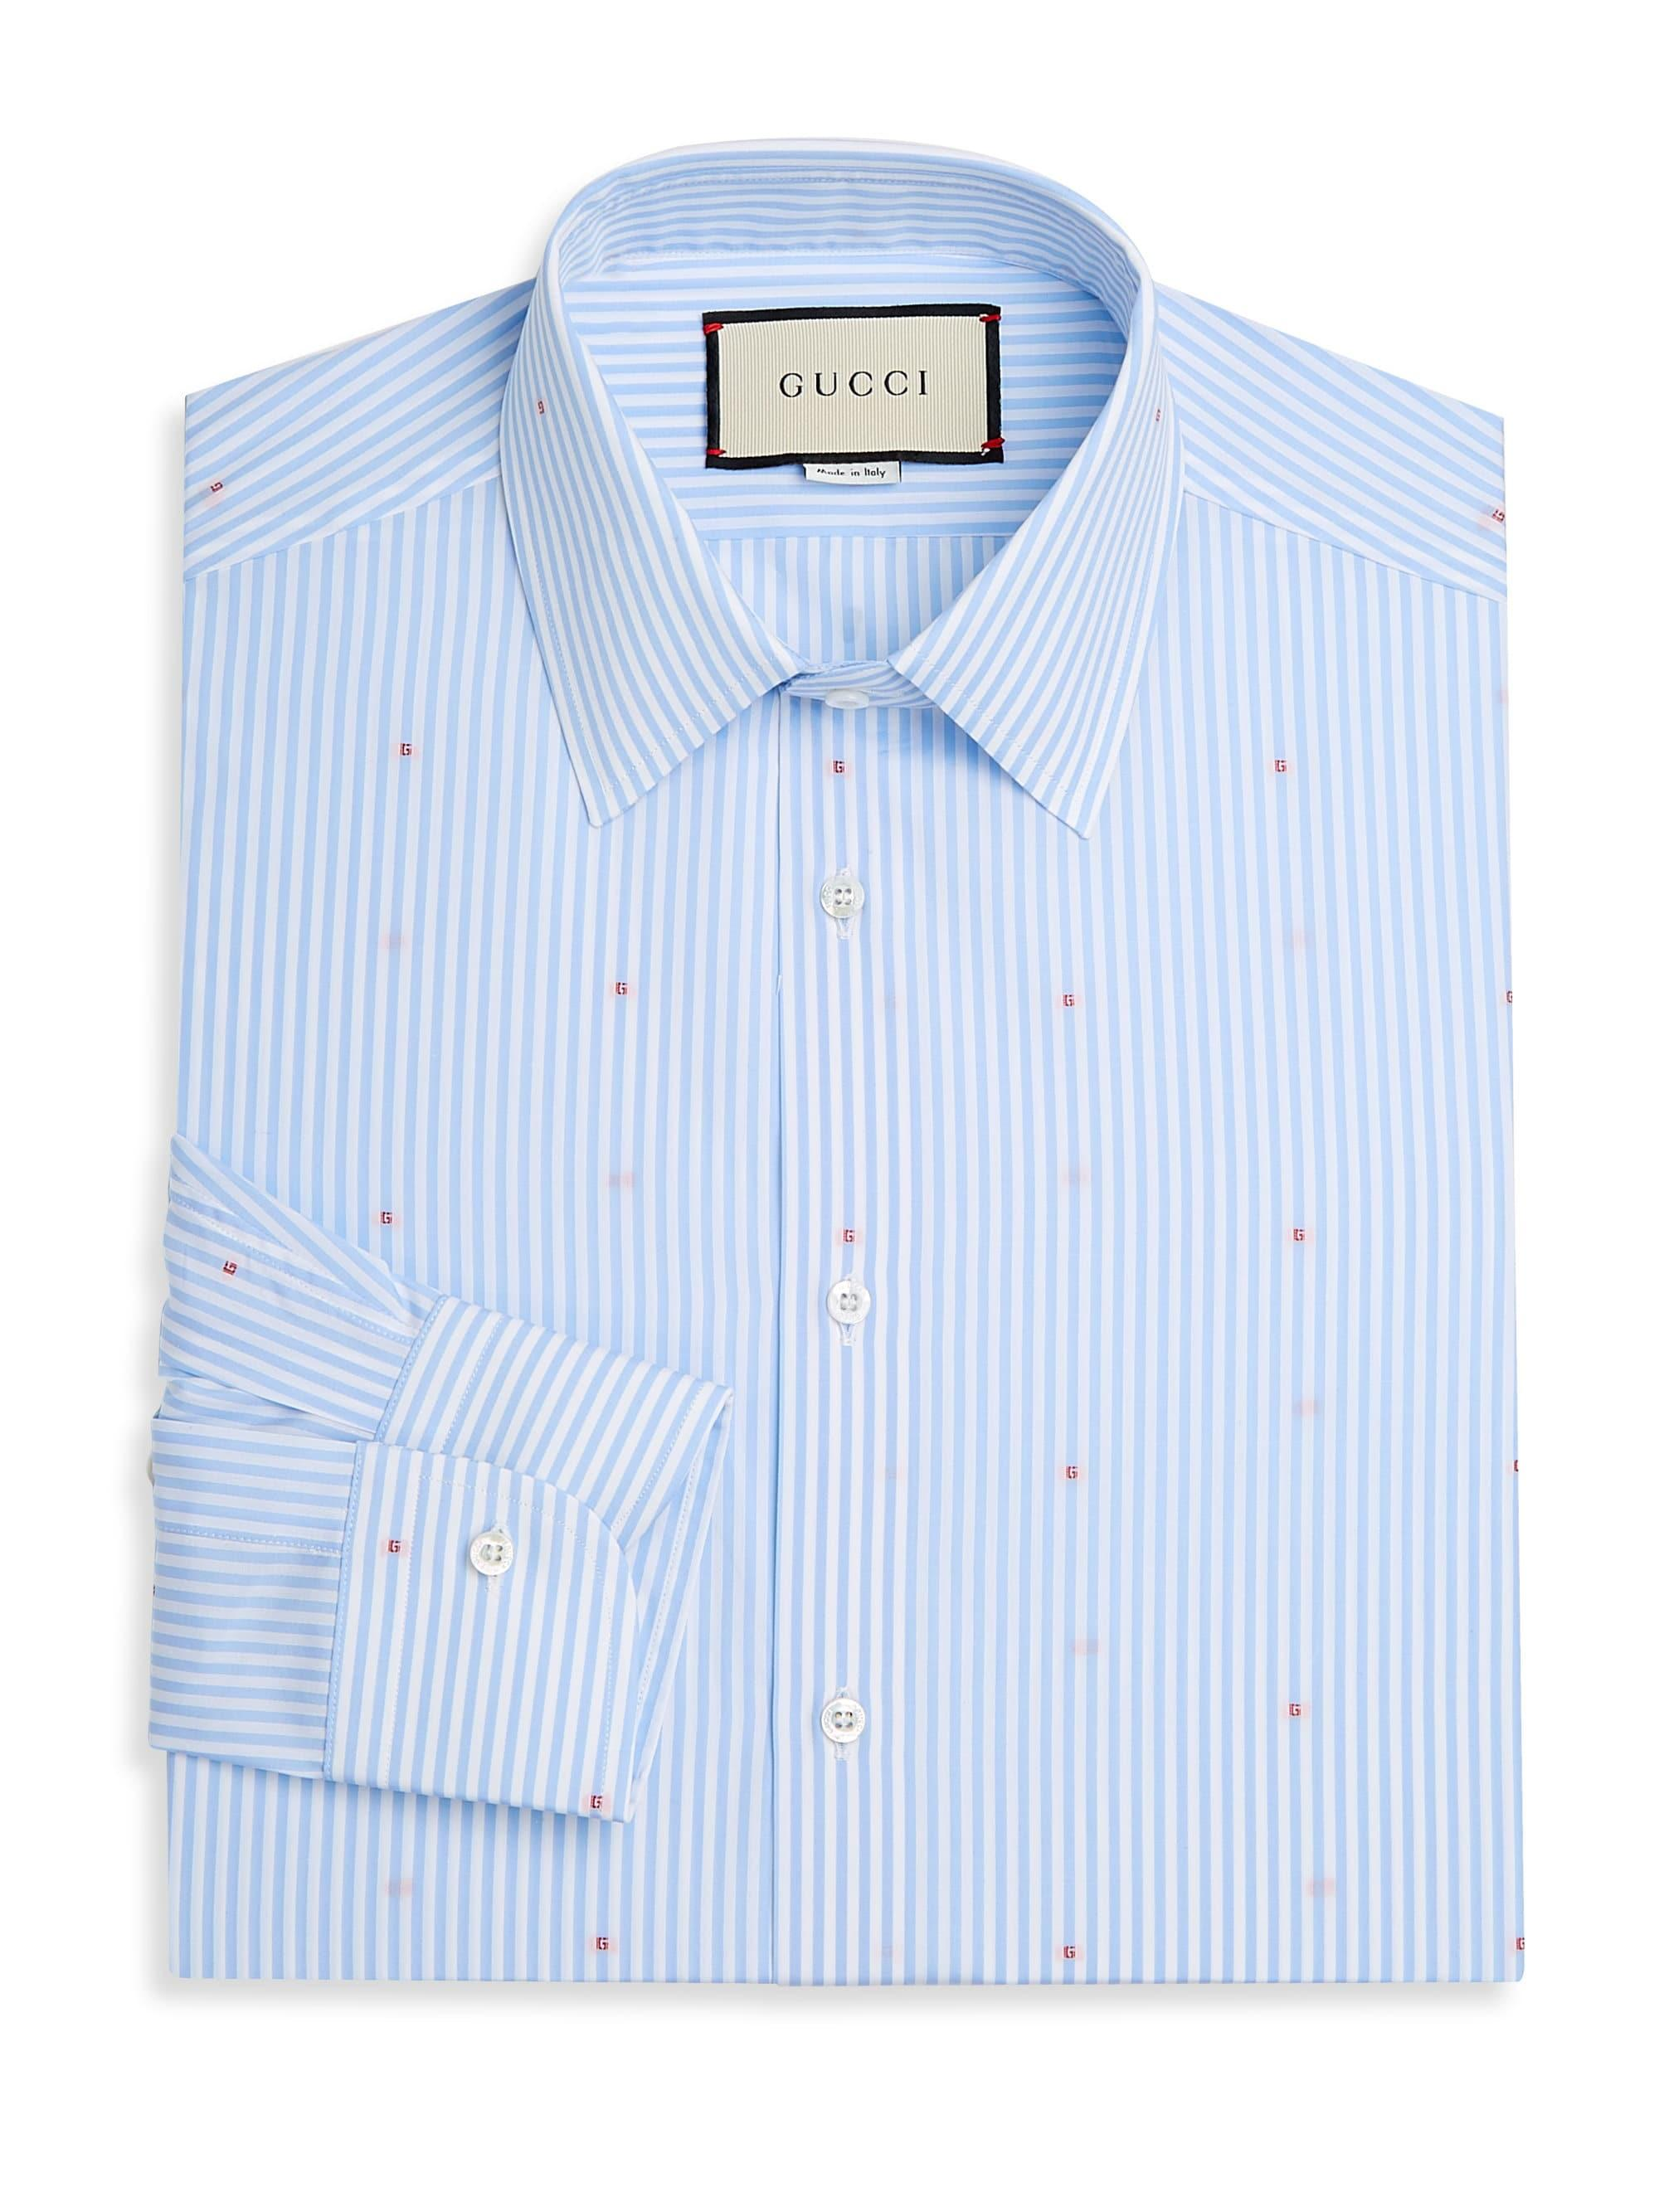 5041baf5754 Lyst - Gucci Micro-g Stripe Fil Coupé Shirt in Blue for Men